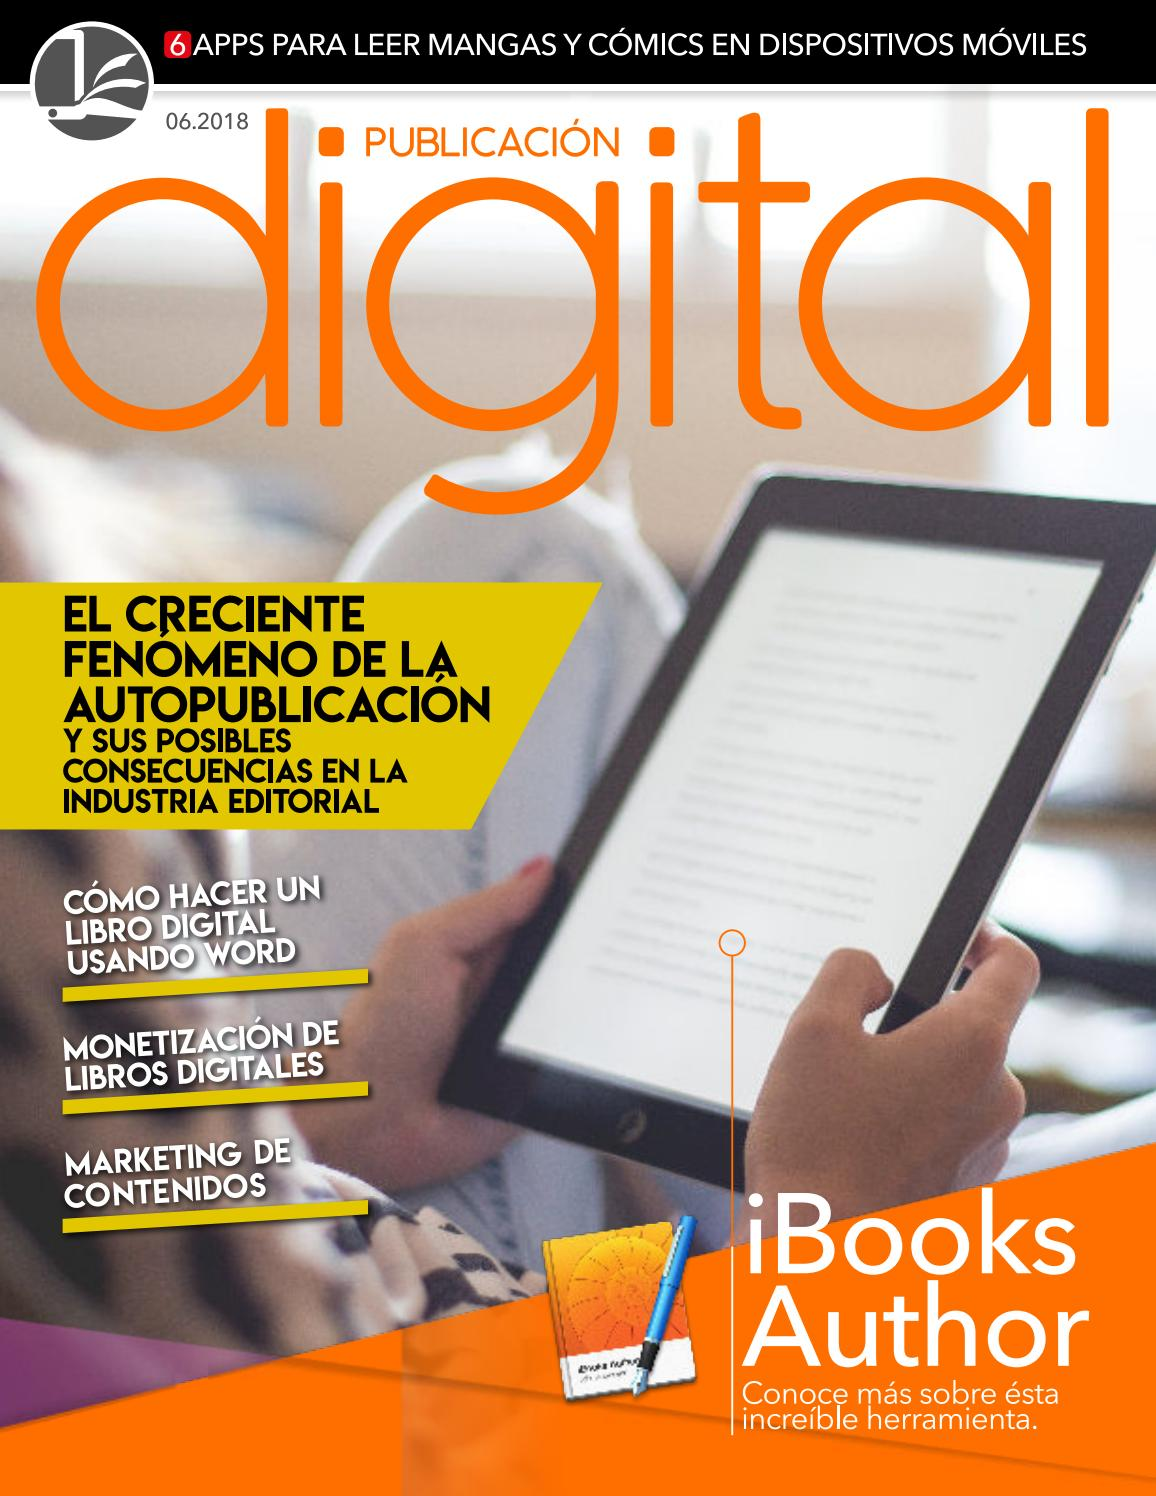 Publicación Digital - Edición iBooks Author by digital-editorial - issuu